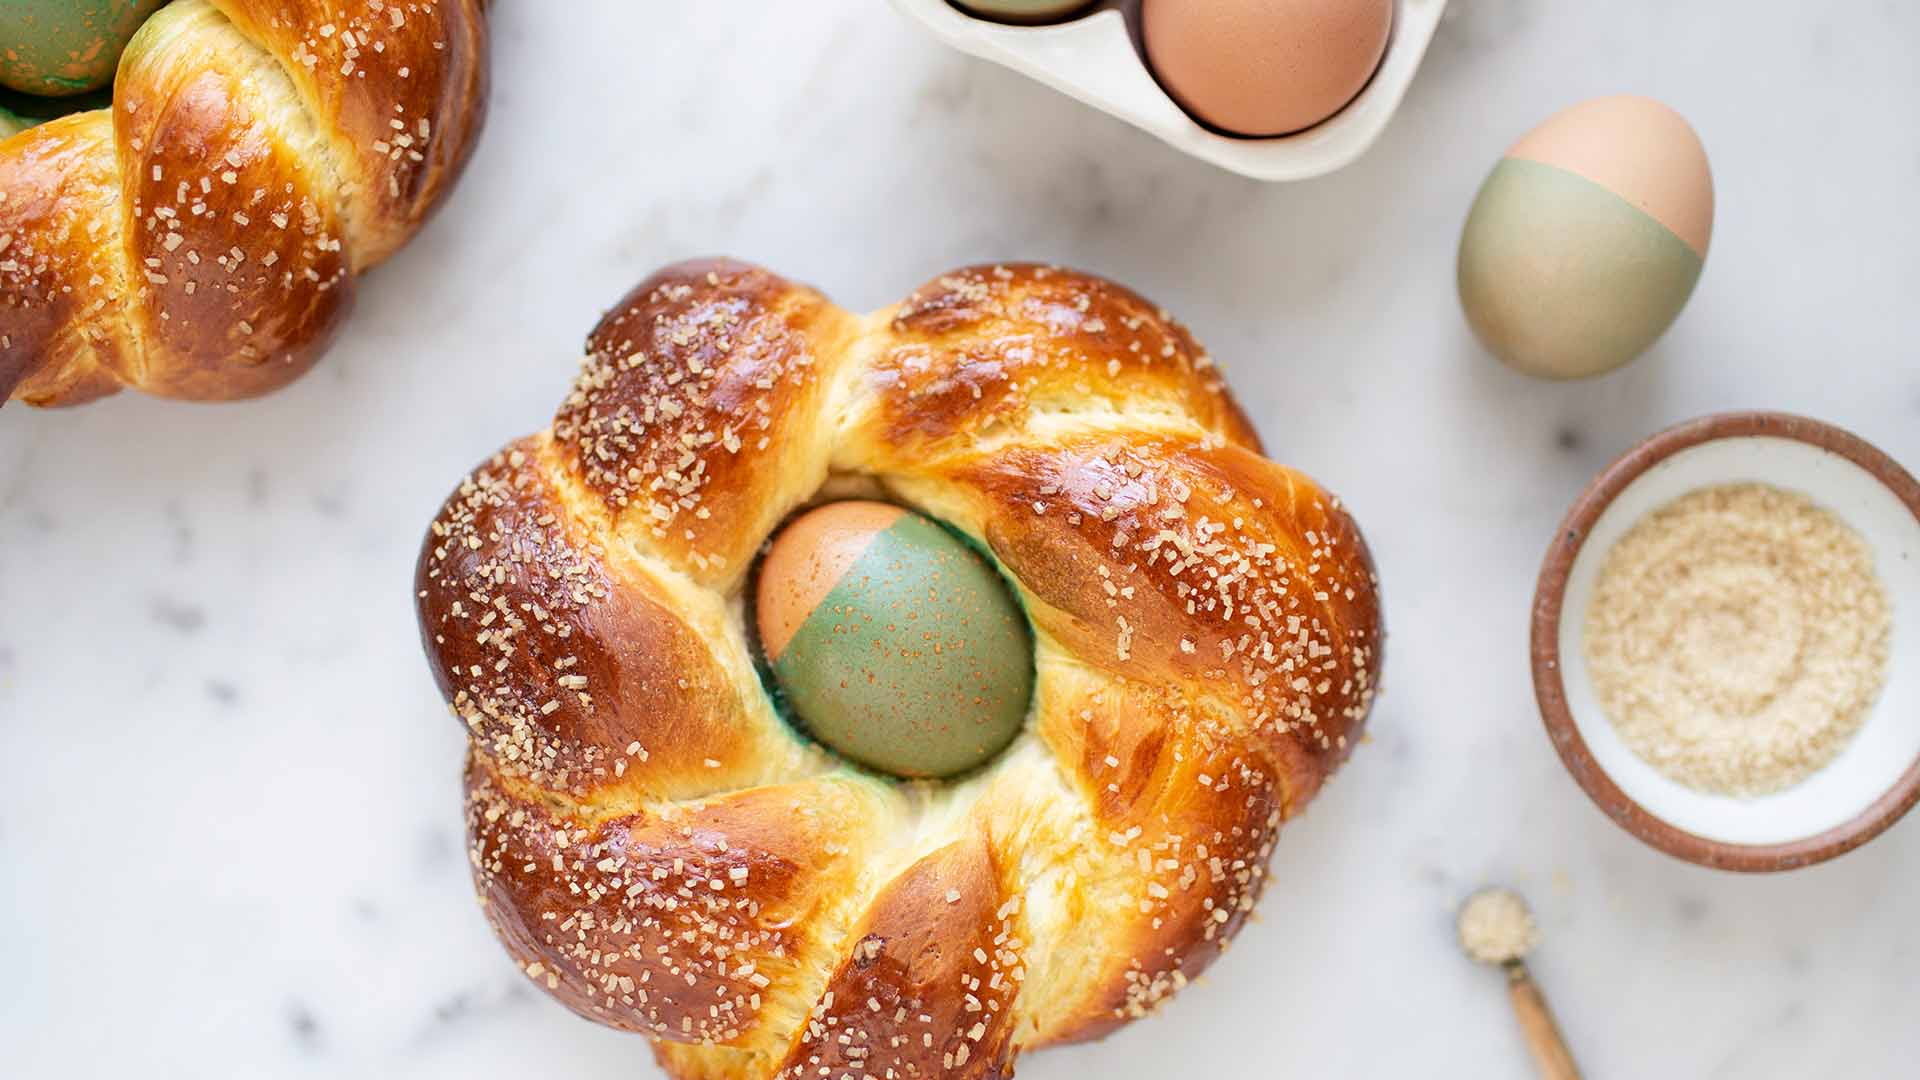 Overhead shot of easter bread on white surface with a green and light pink egg in center.